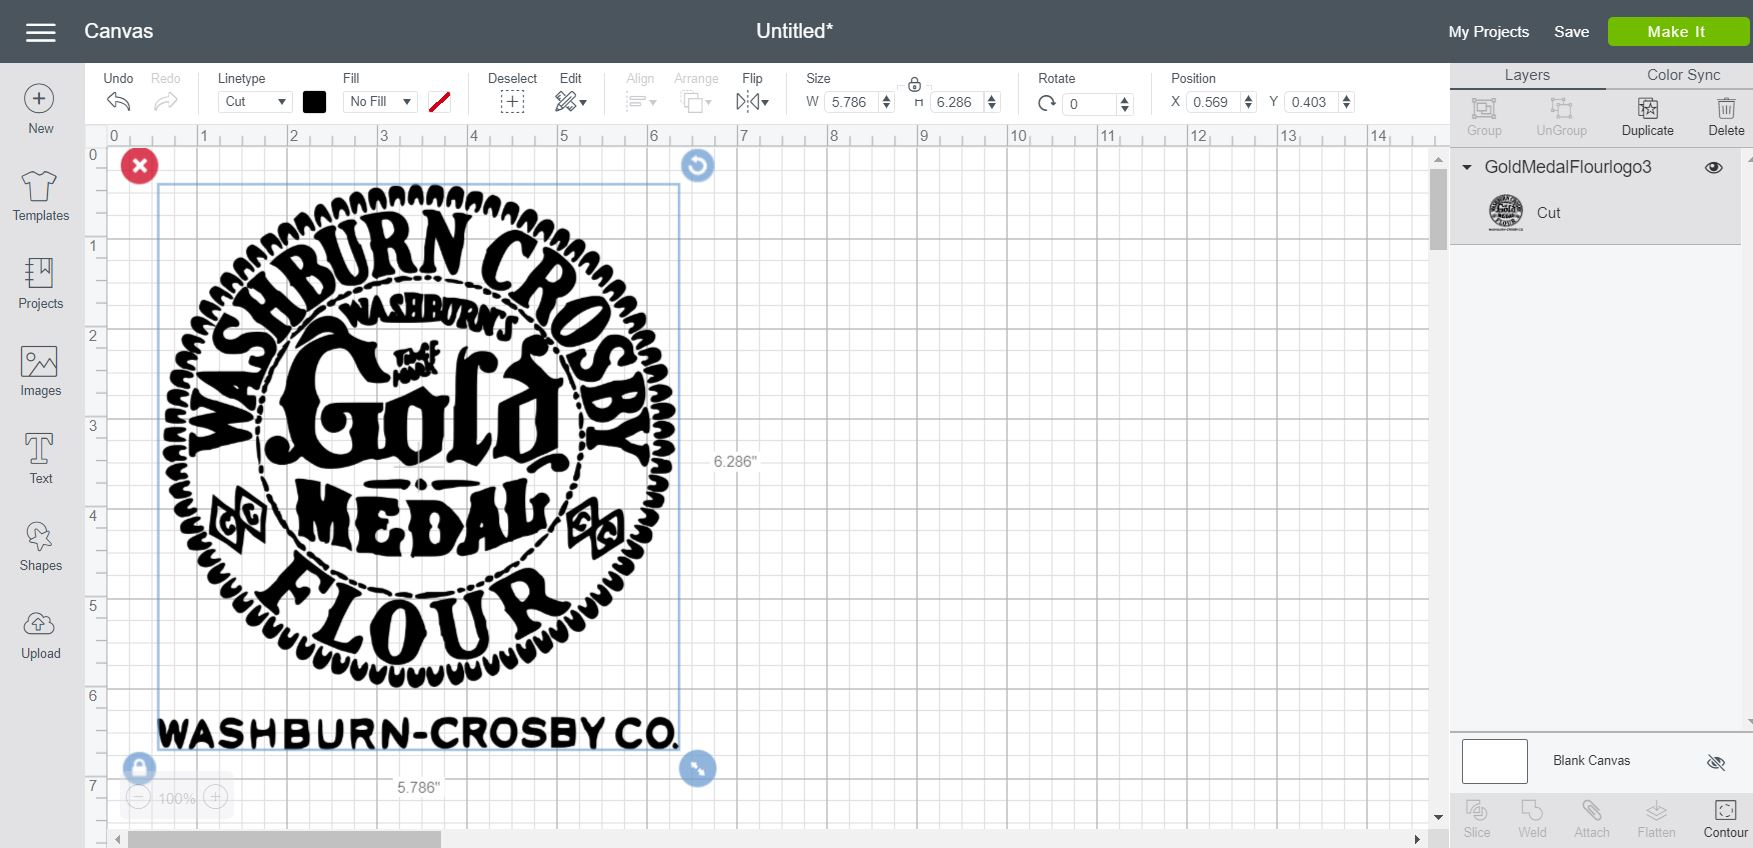 washburn crosby logo in cricut design space